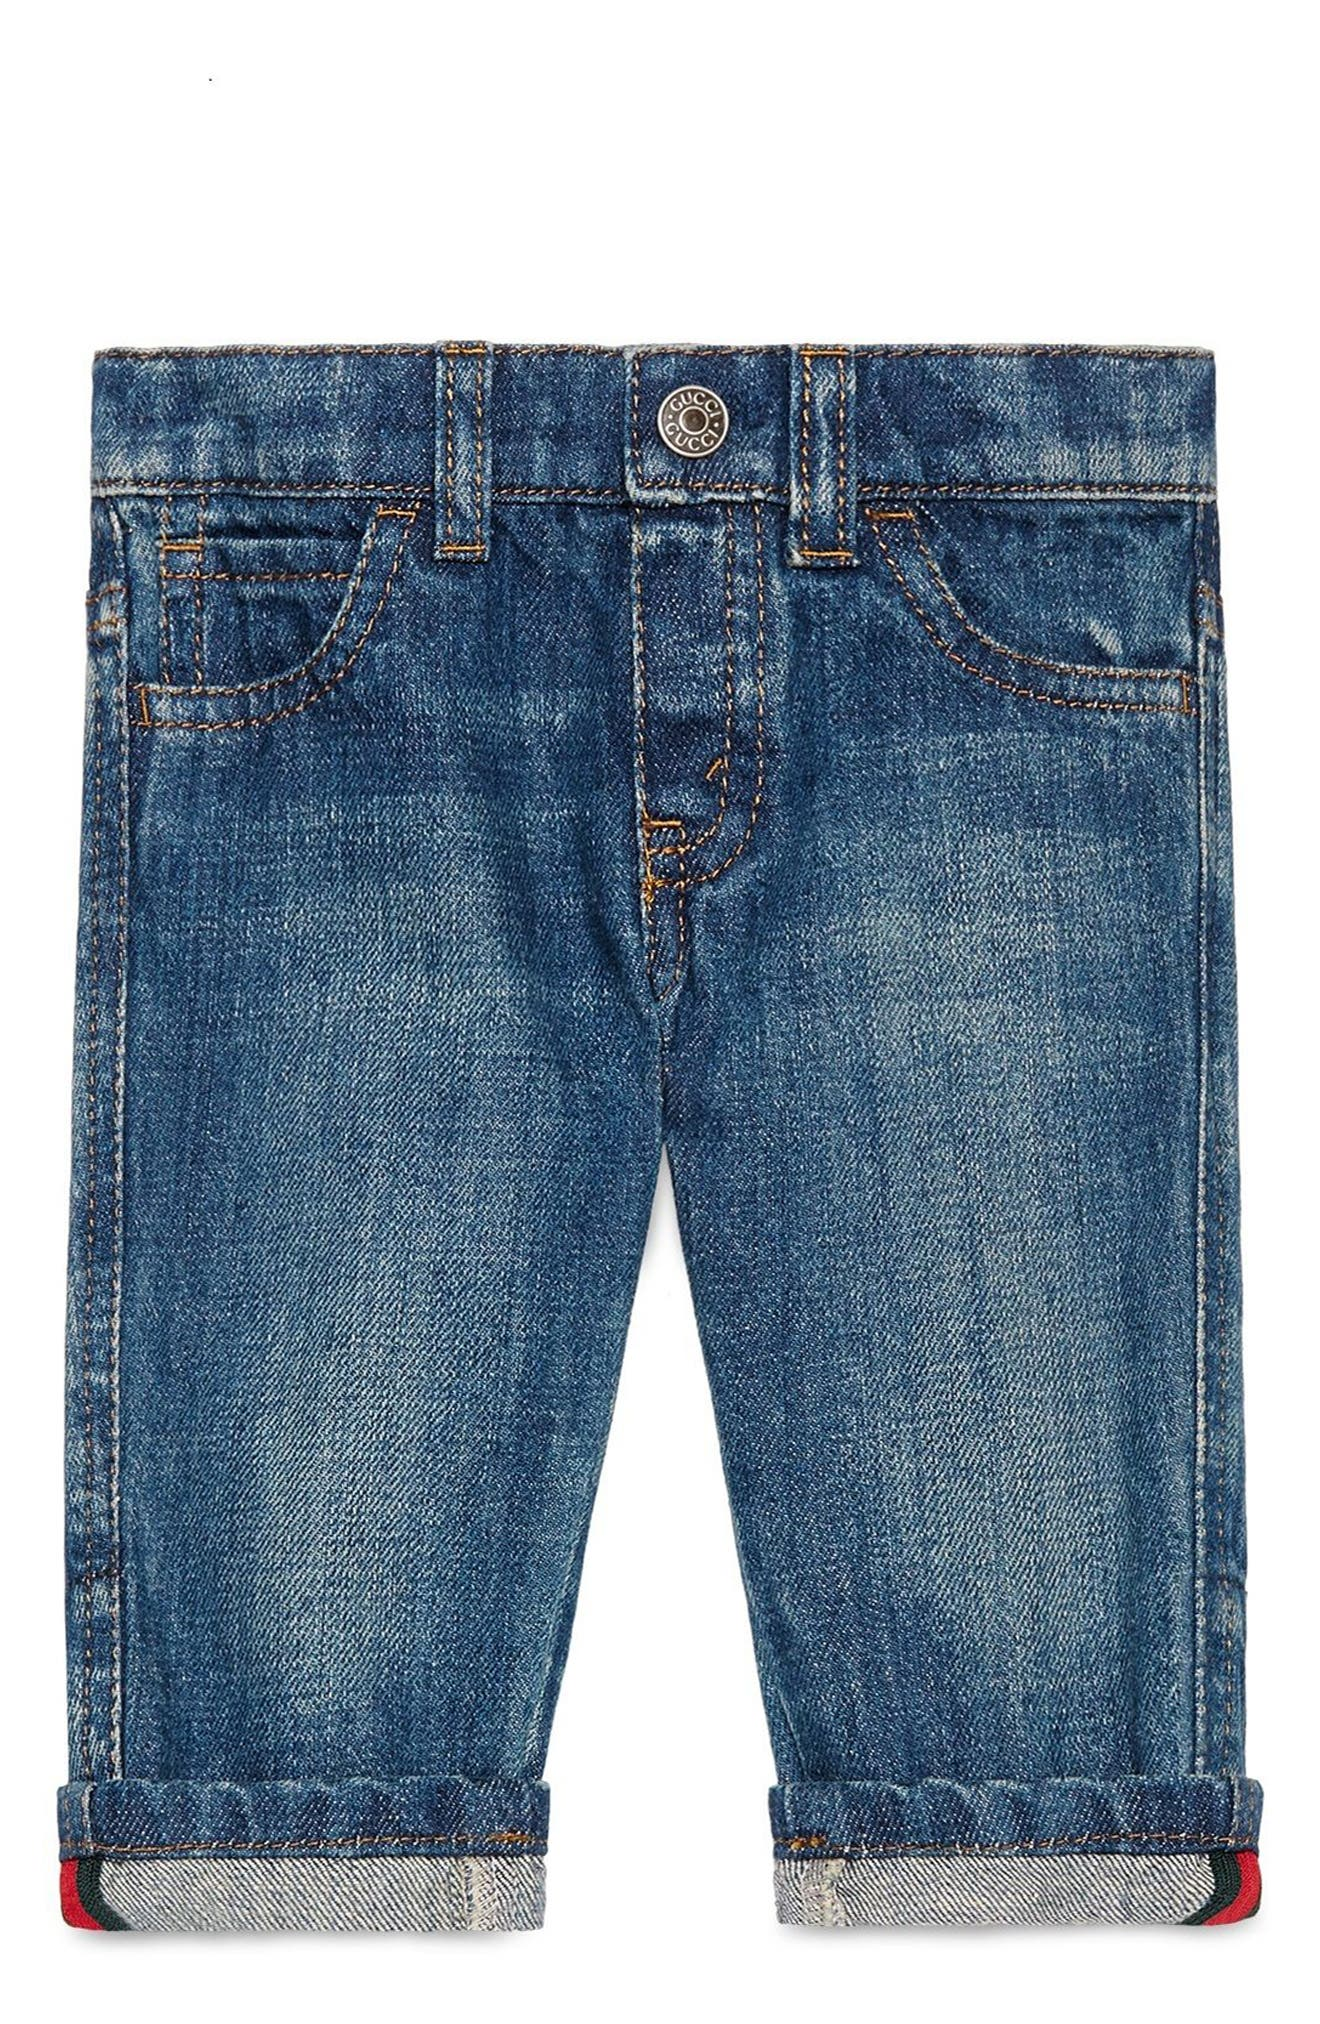 Alternate Image 1 Selected - Gucci Straight Leg Jeans (Baby Boys & Toddler Boys)